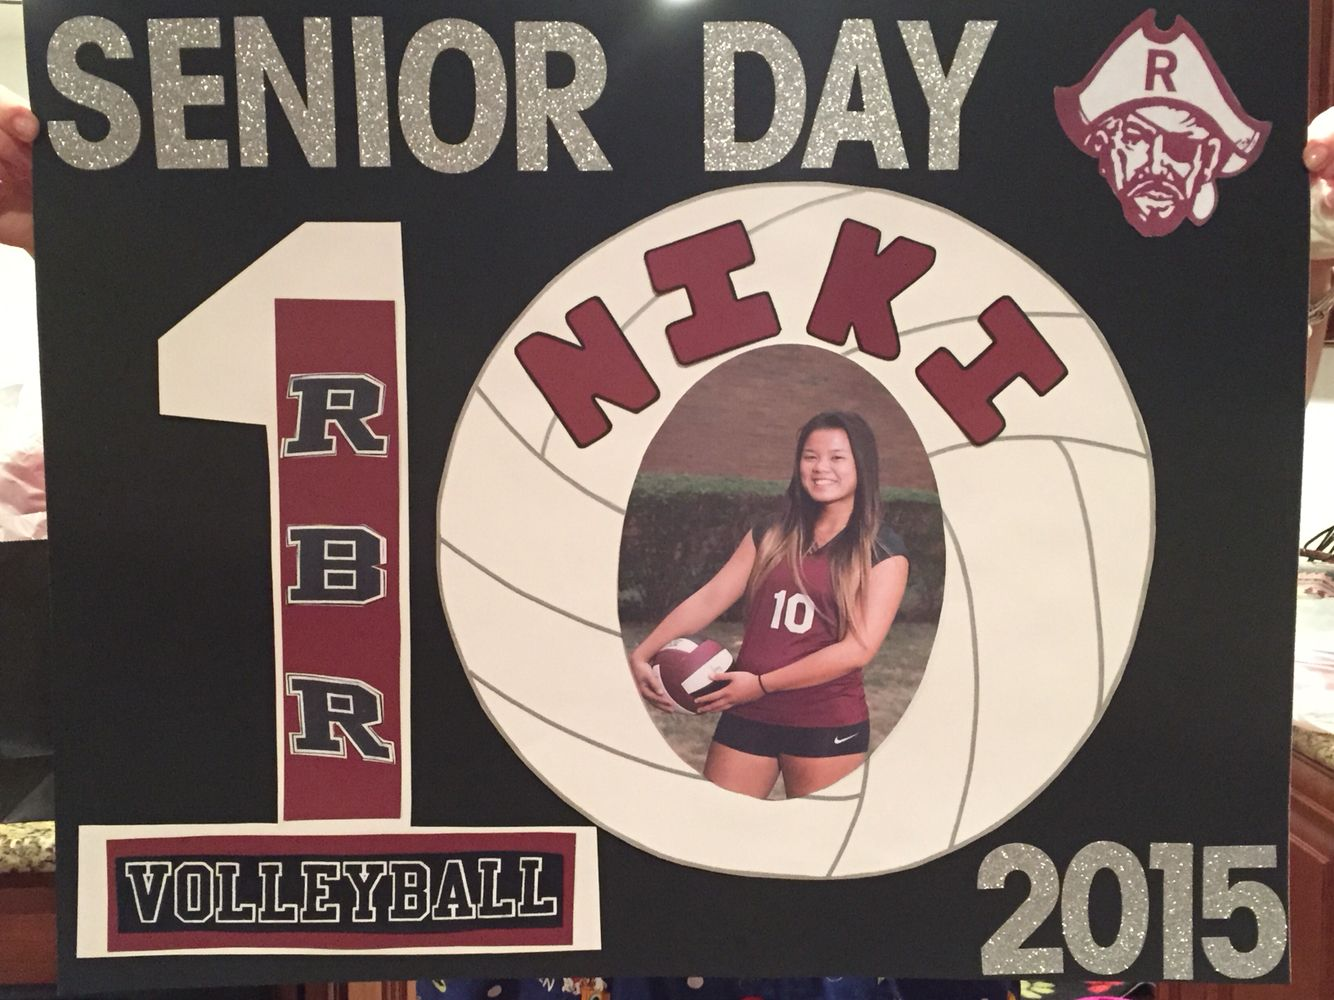 Senior Day Volleyball Poster Volleyball Posters Senior Day Senior Night Posters